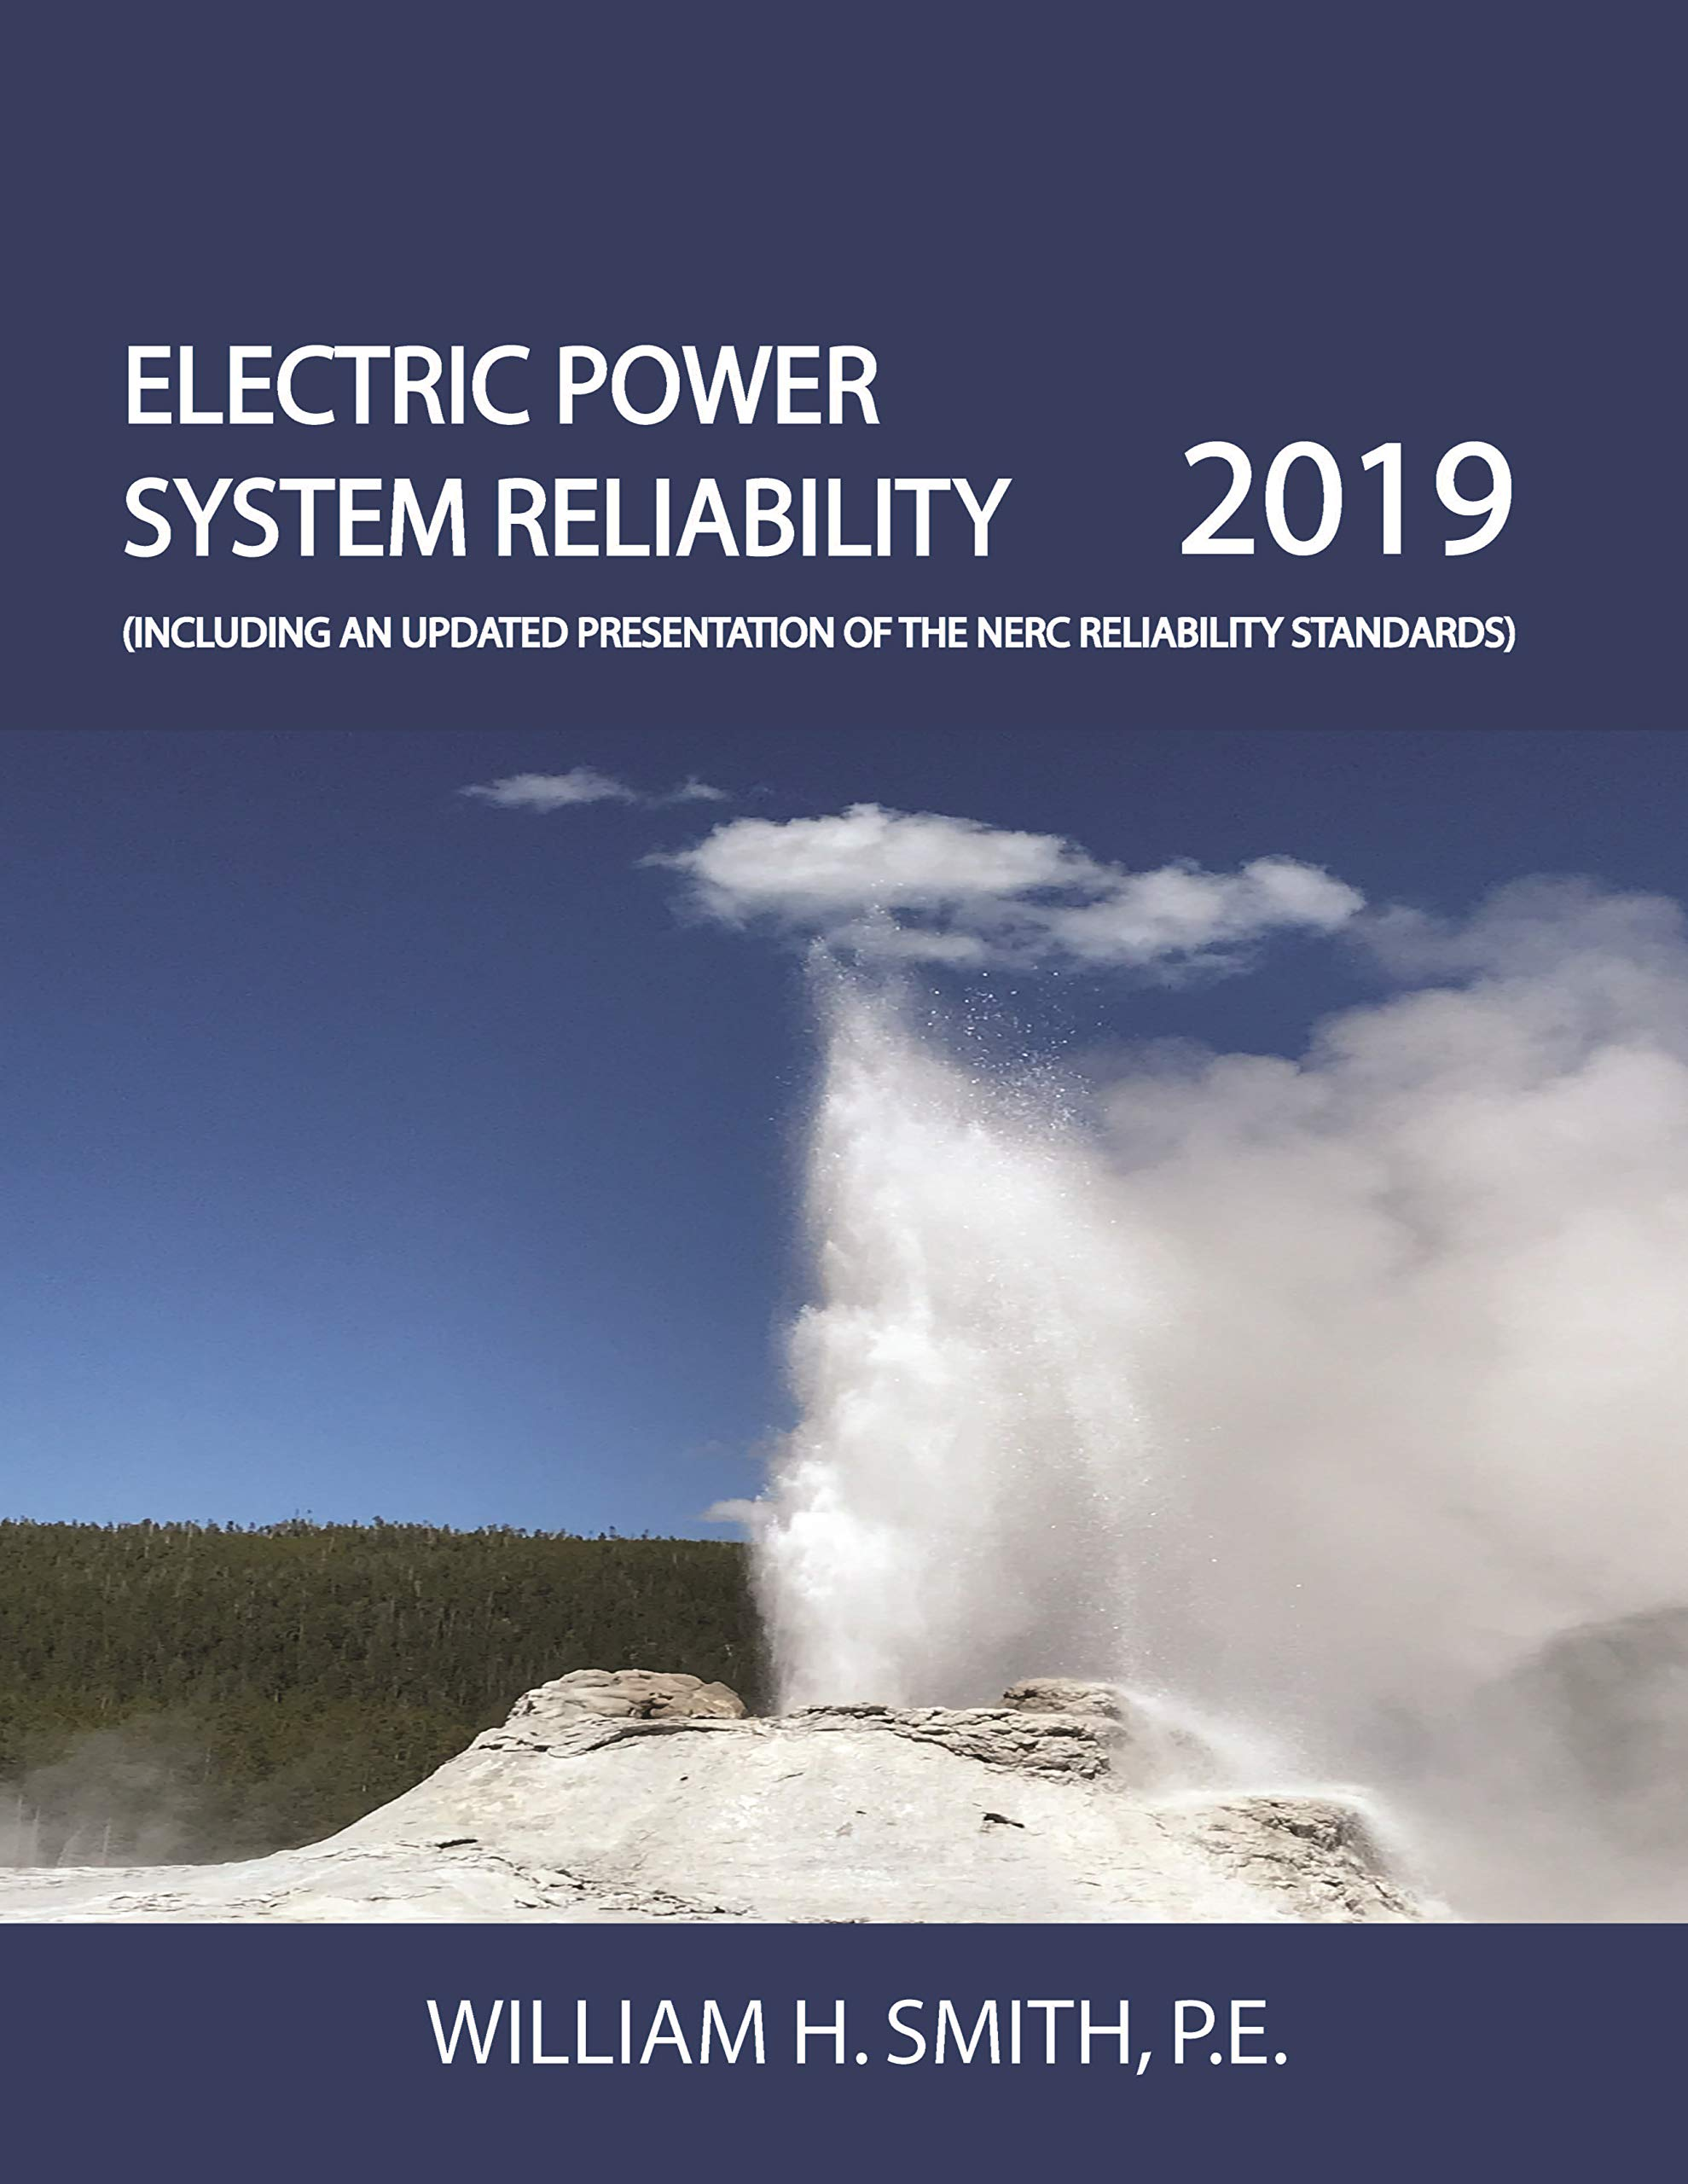 Electric Power System Reliability Pe William H Smith